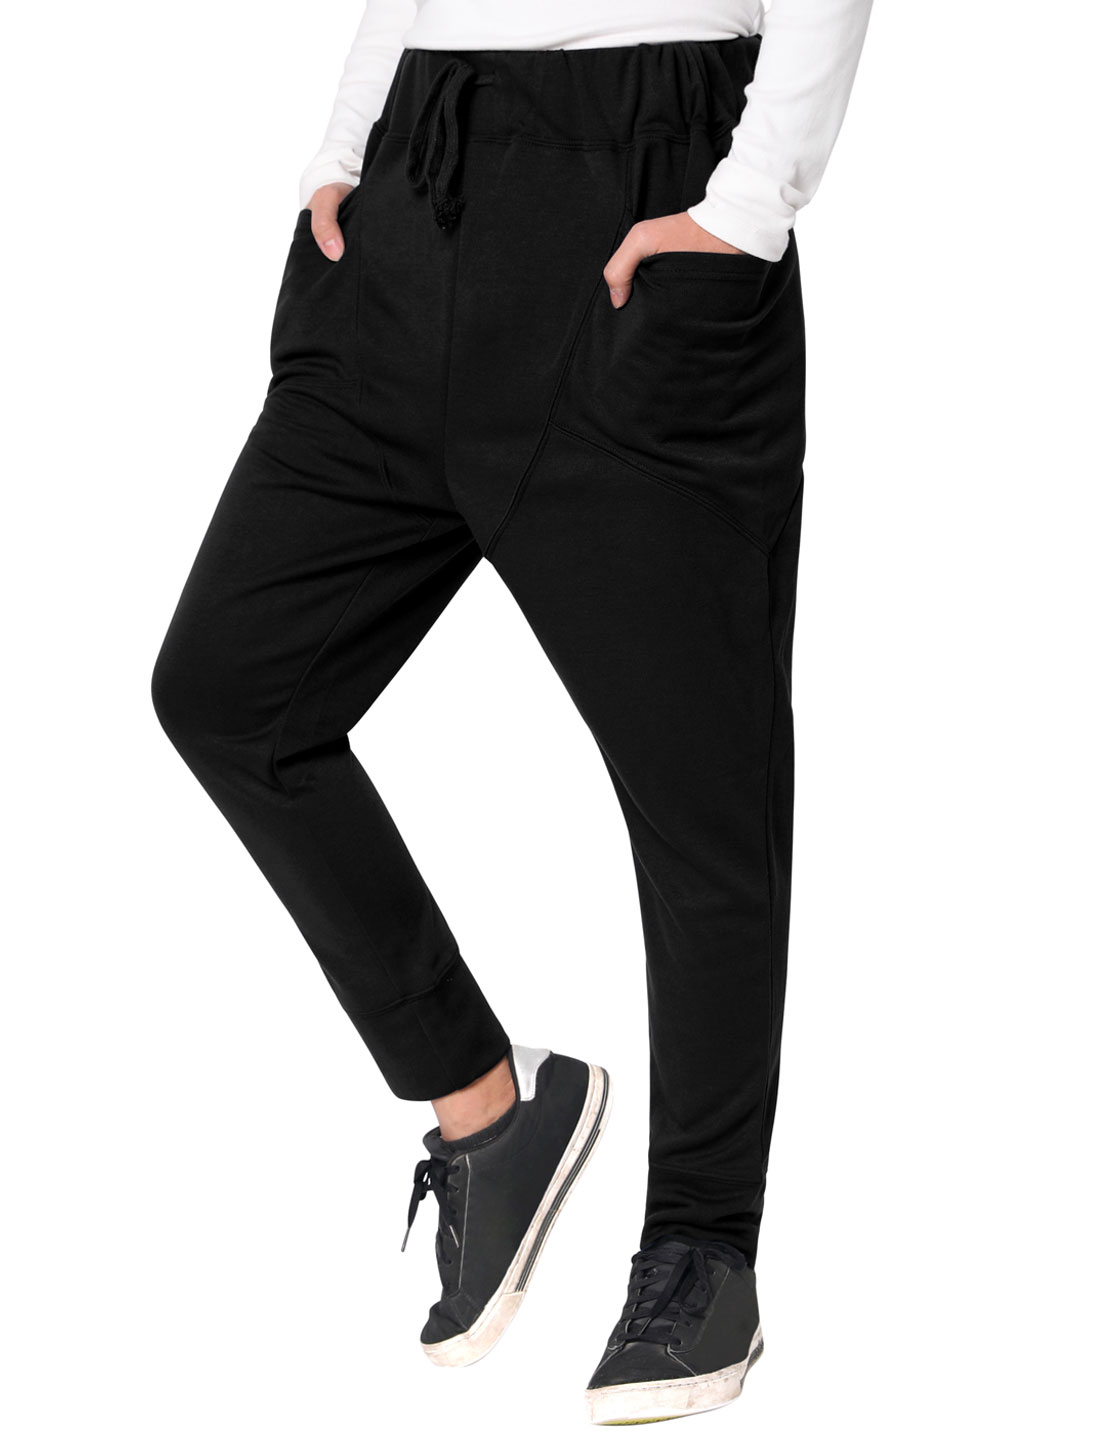 Mens Stylish Baggy Pockets Stretchy Waistband Casual Trousers W28/30